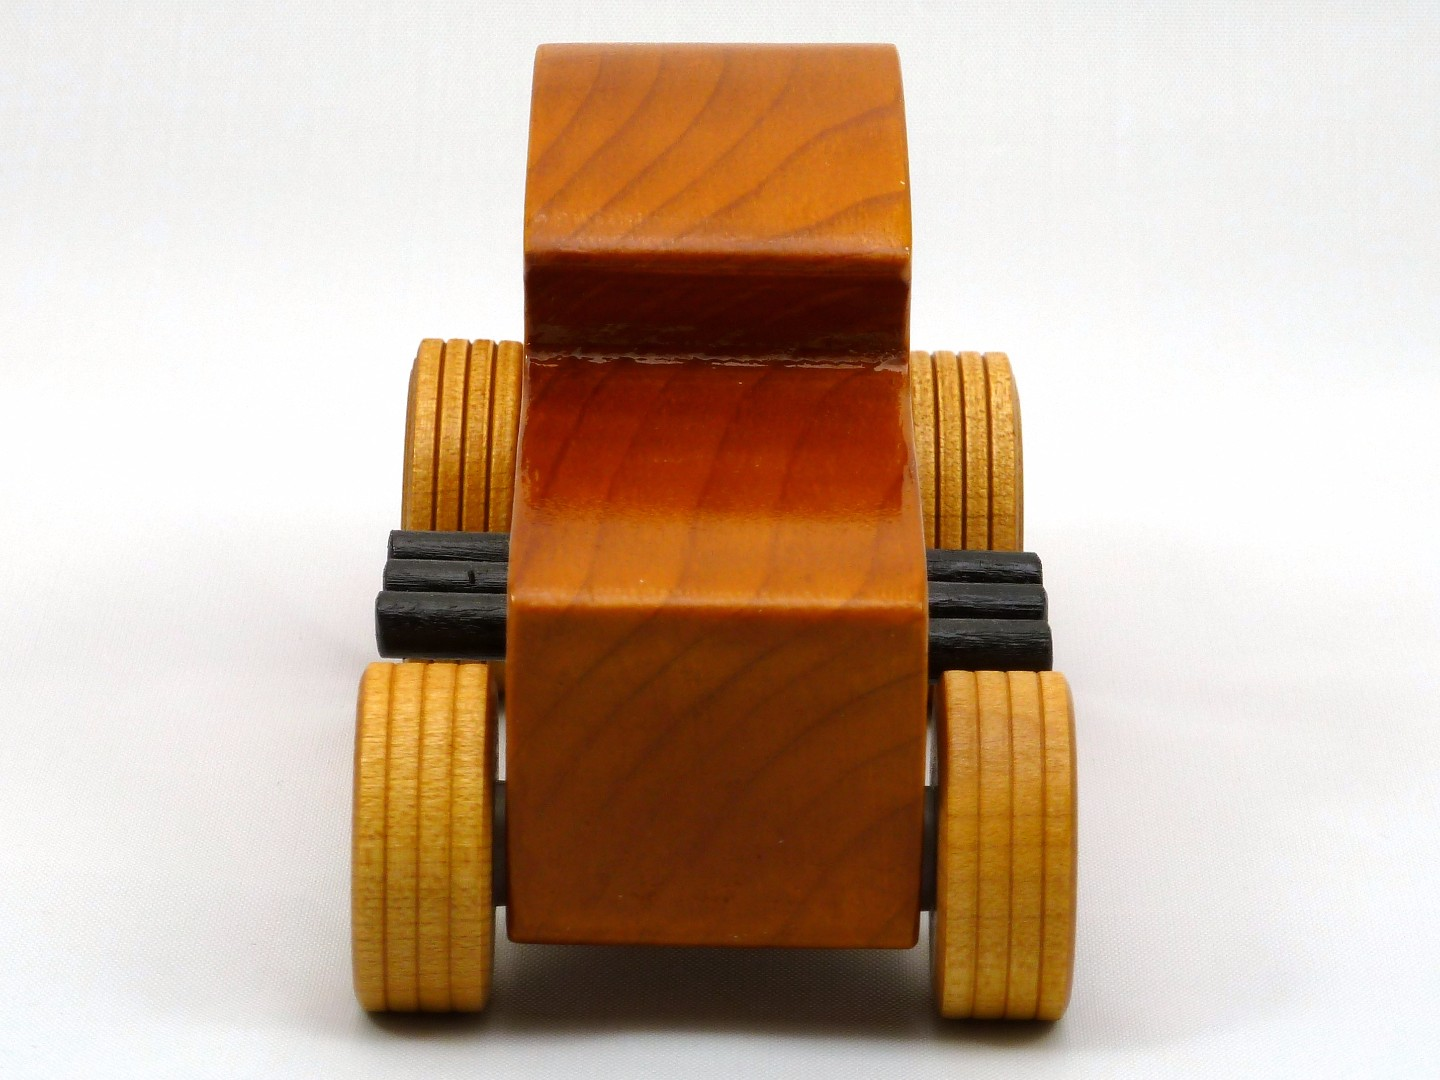 20170902-171403 Wooden Toy Car - Hot Rod Freaky Ford - 32 Deuce Coupe - Pine - Amber Shellac - Red.jpg